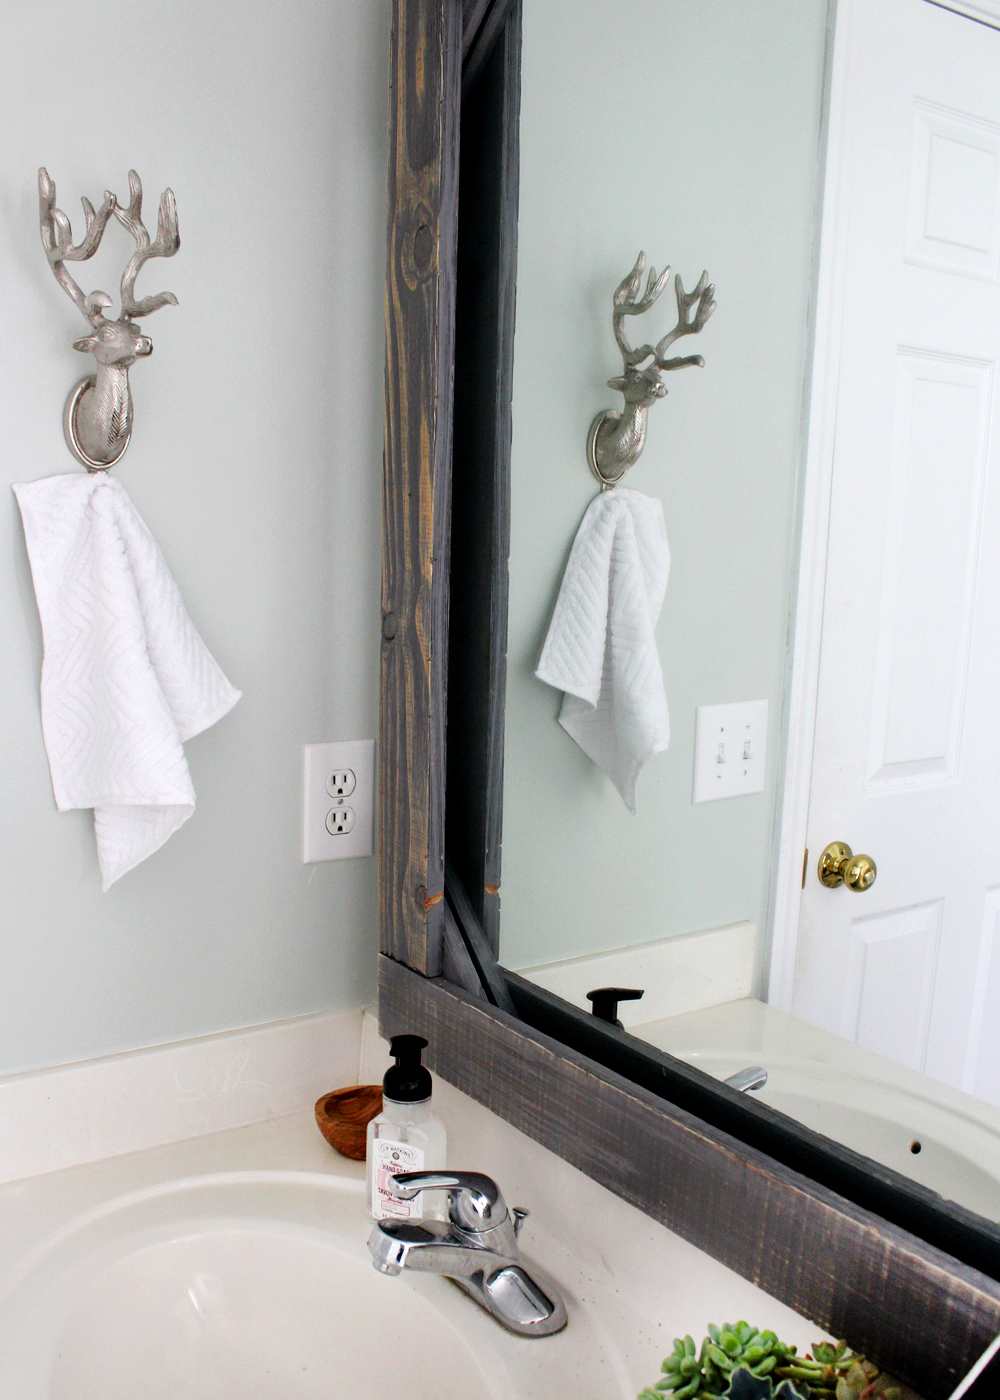 customize your bathroom mirror with a rustic wood frame!